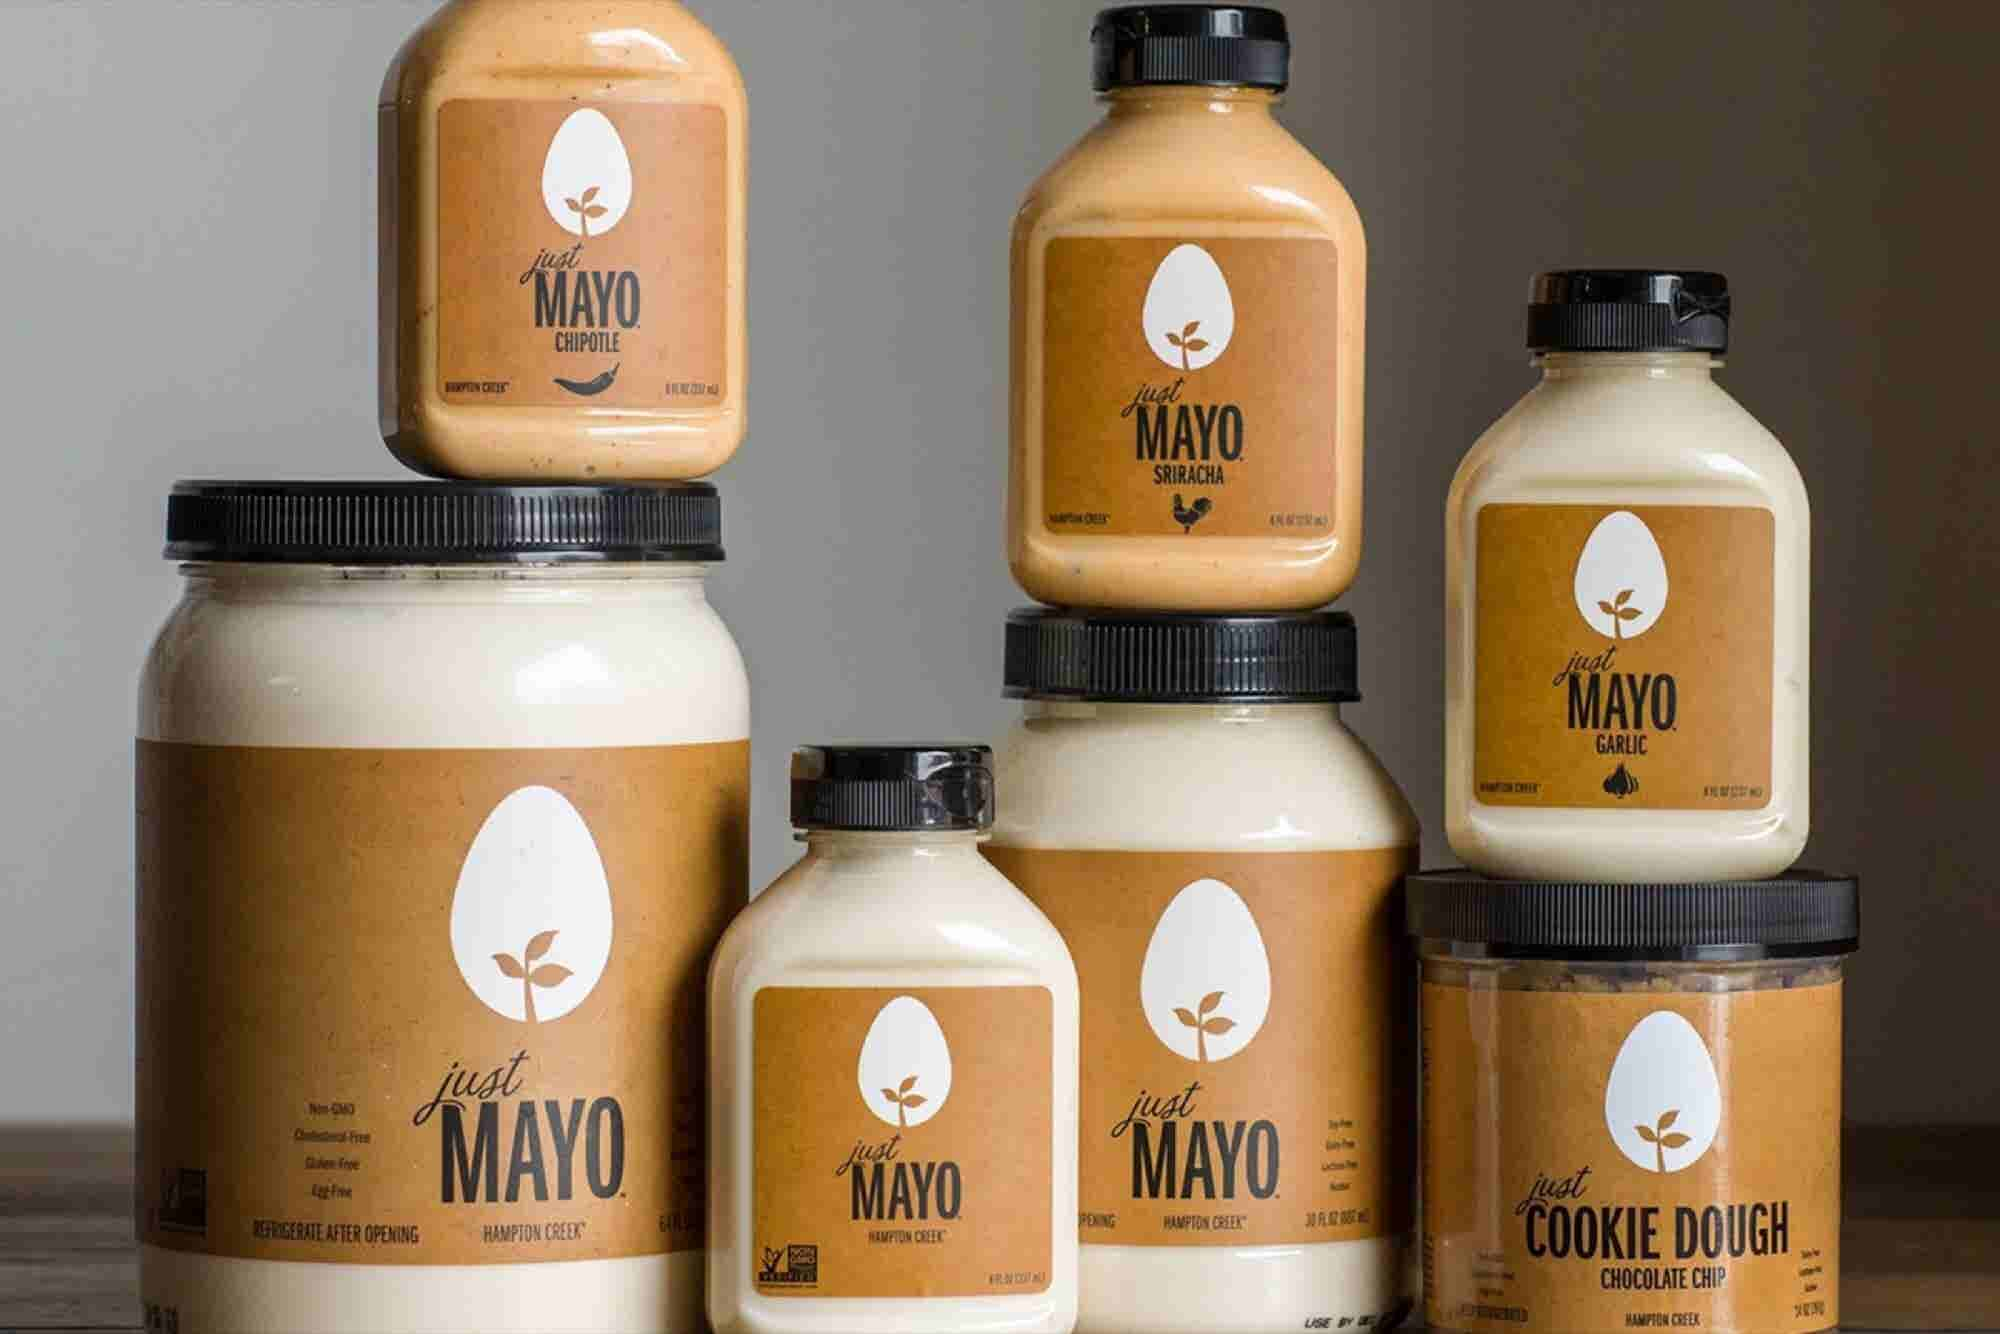 Hampton Creek Tells FDA Mayo and Mayonnaise Are Different